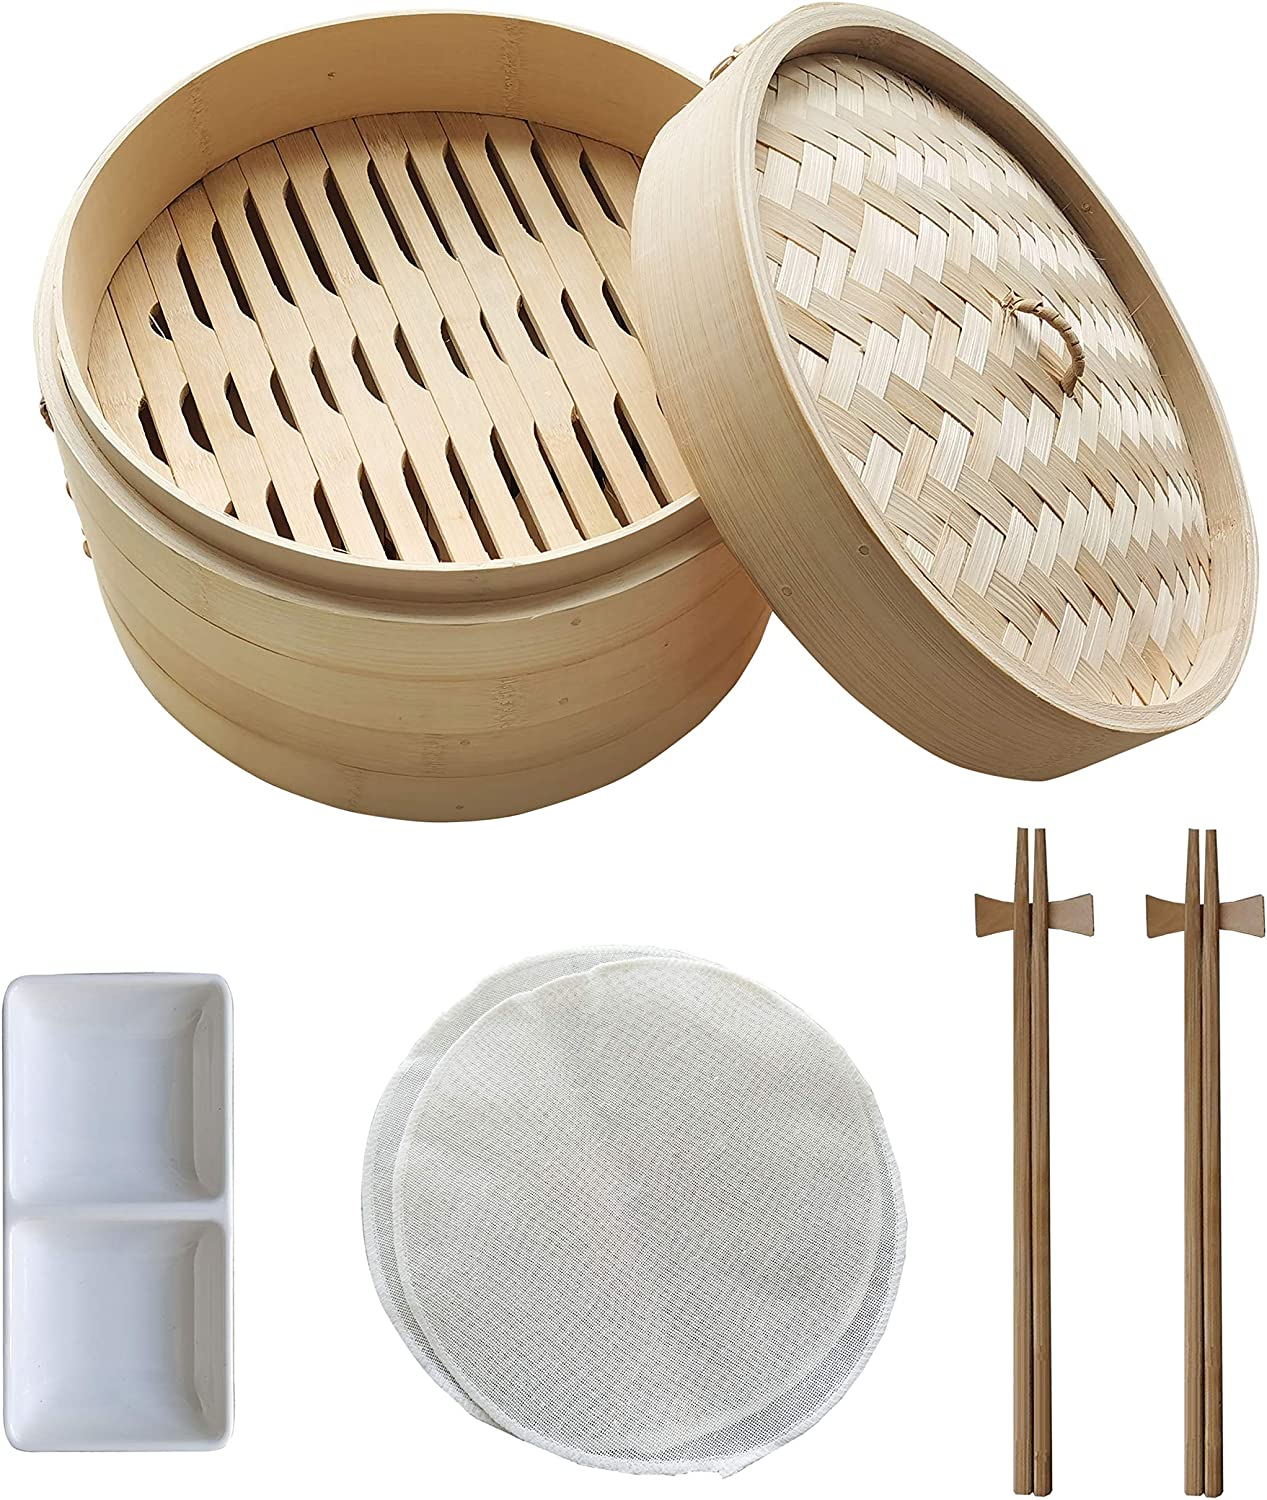 ZYH 10-Inch Bamboo Steamer, 2-Layer Food Steamer, Natural Bamboo Dumpling Steamer With Cover